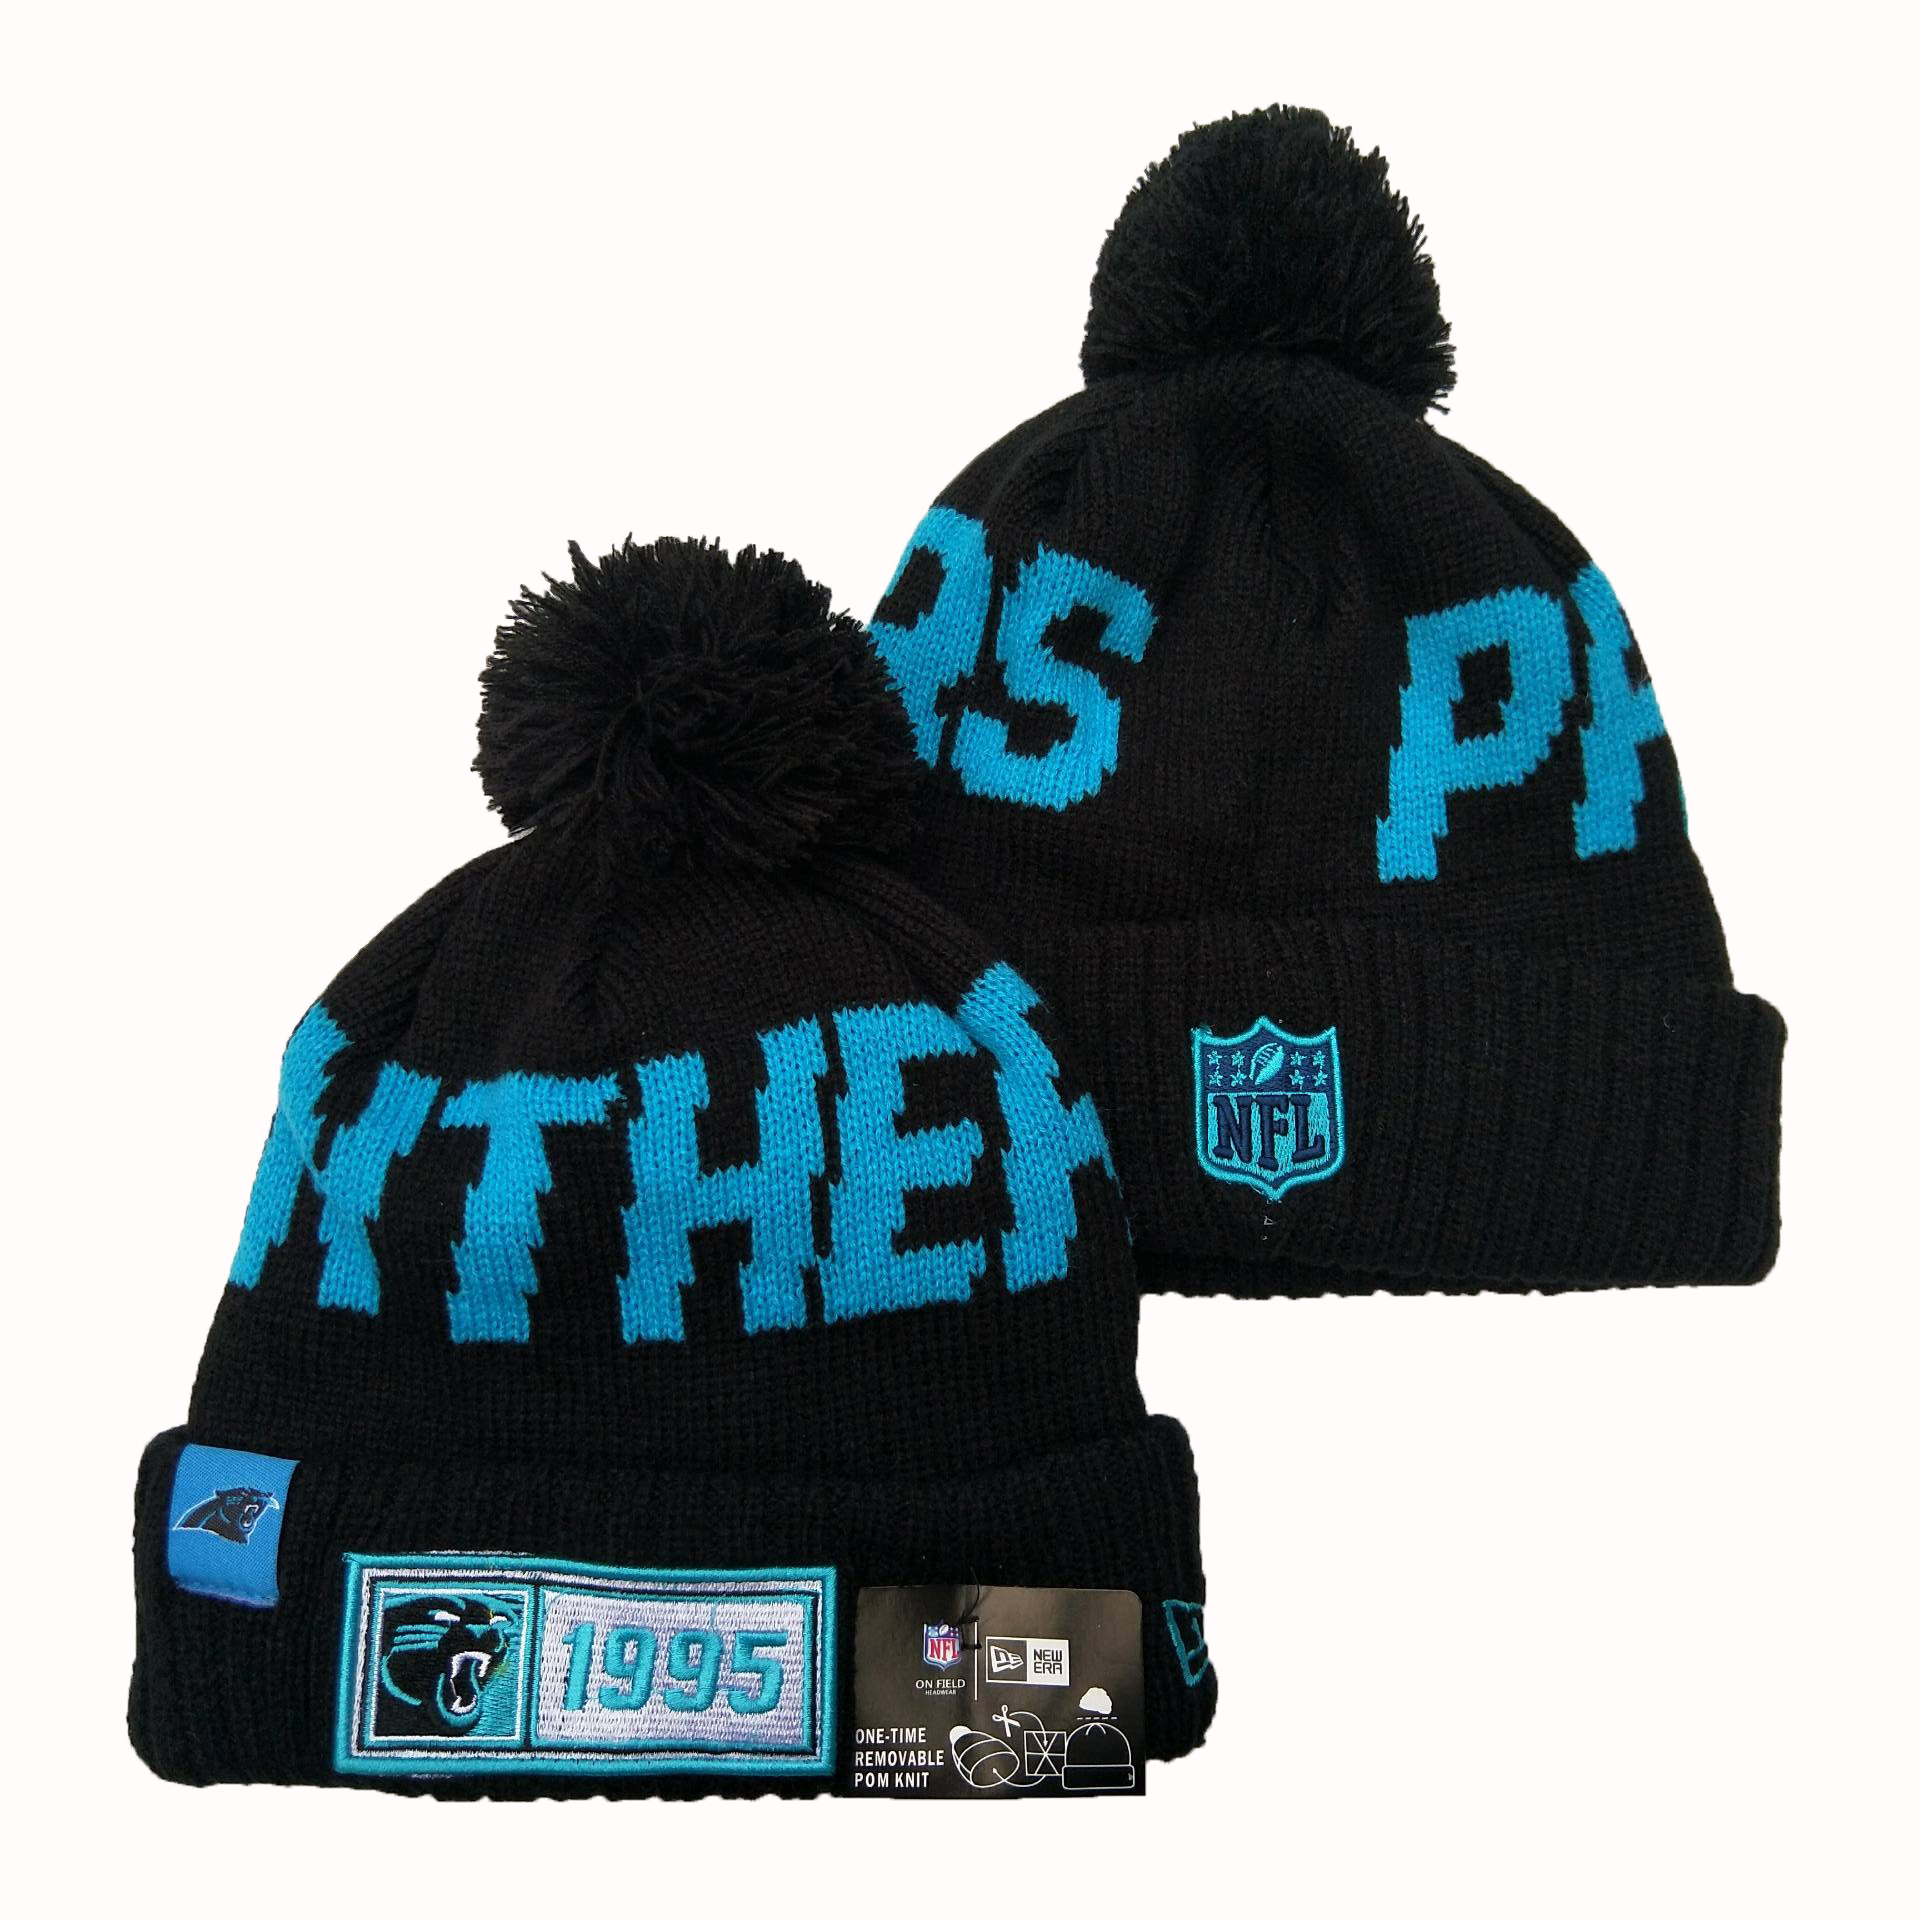 Panthers Team Logo Black 100th Season Pom Knit Hat YD